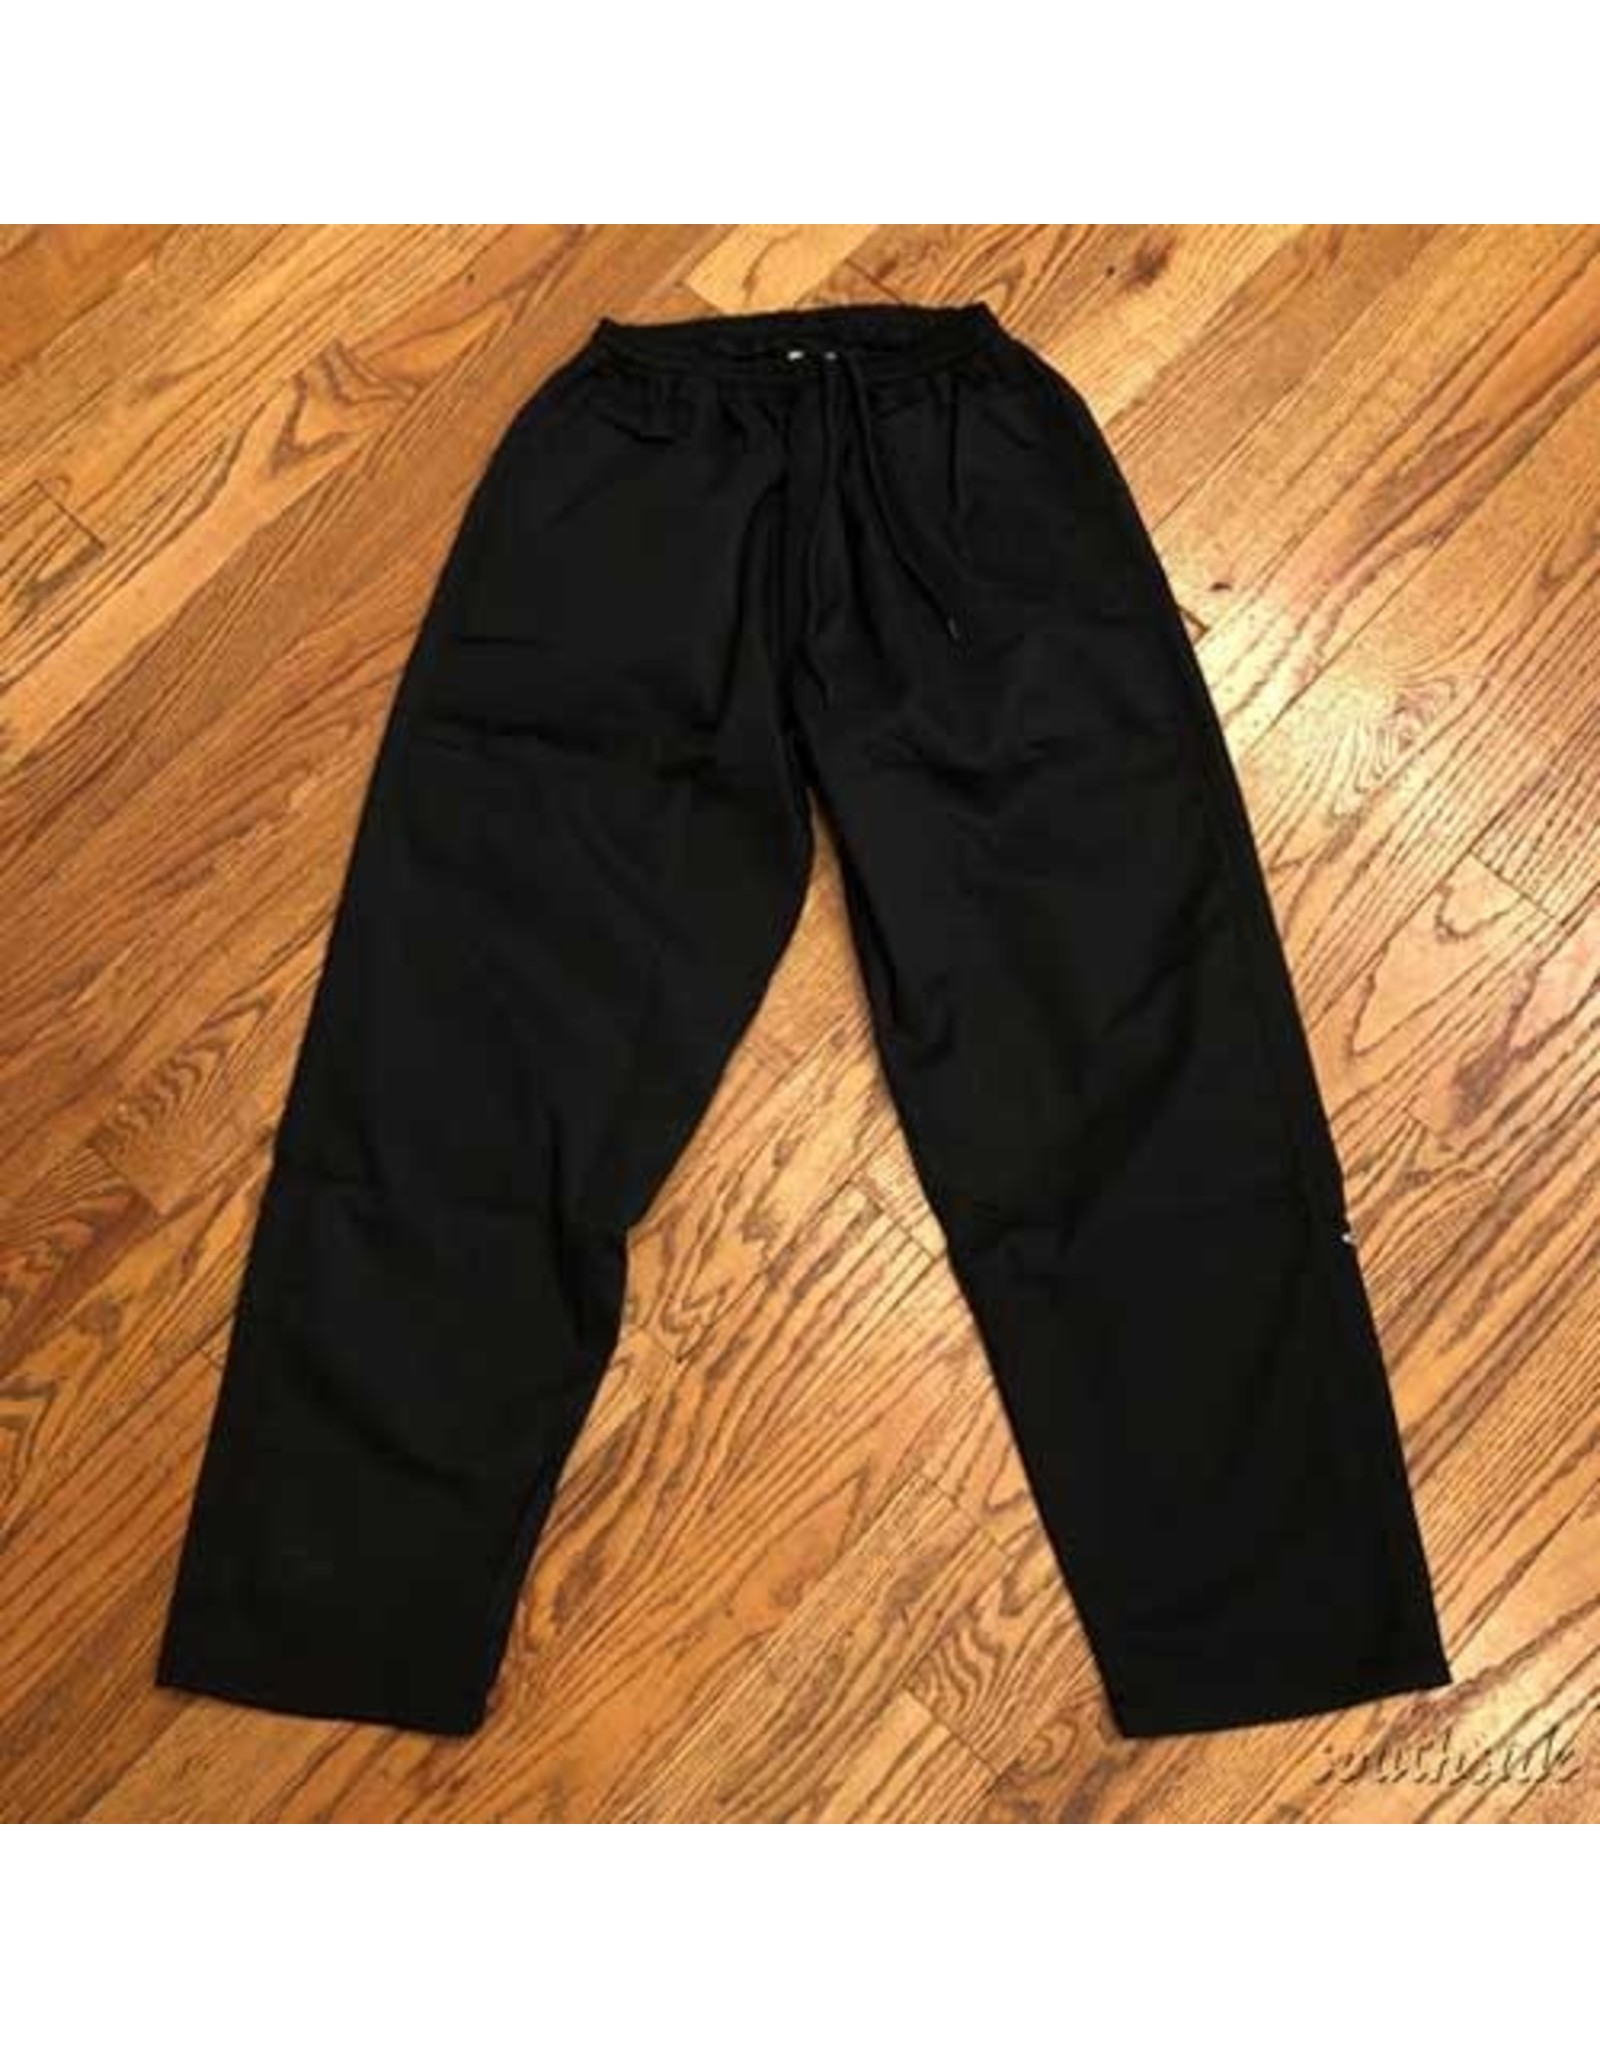 Southside Southside Gonz 94 Pant Black White Embroidered